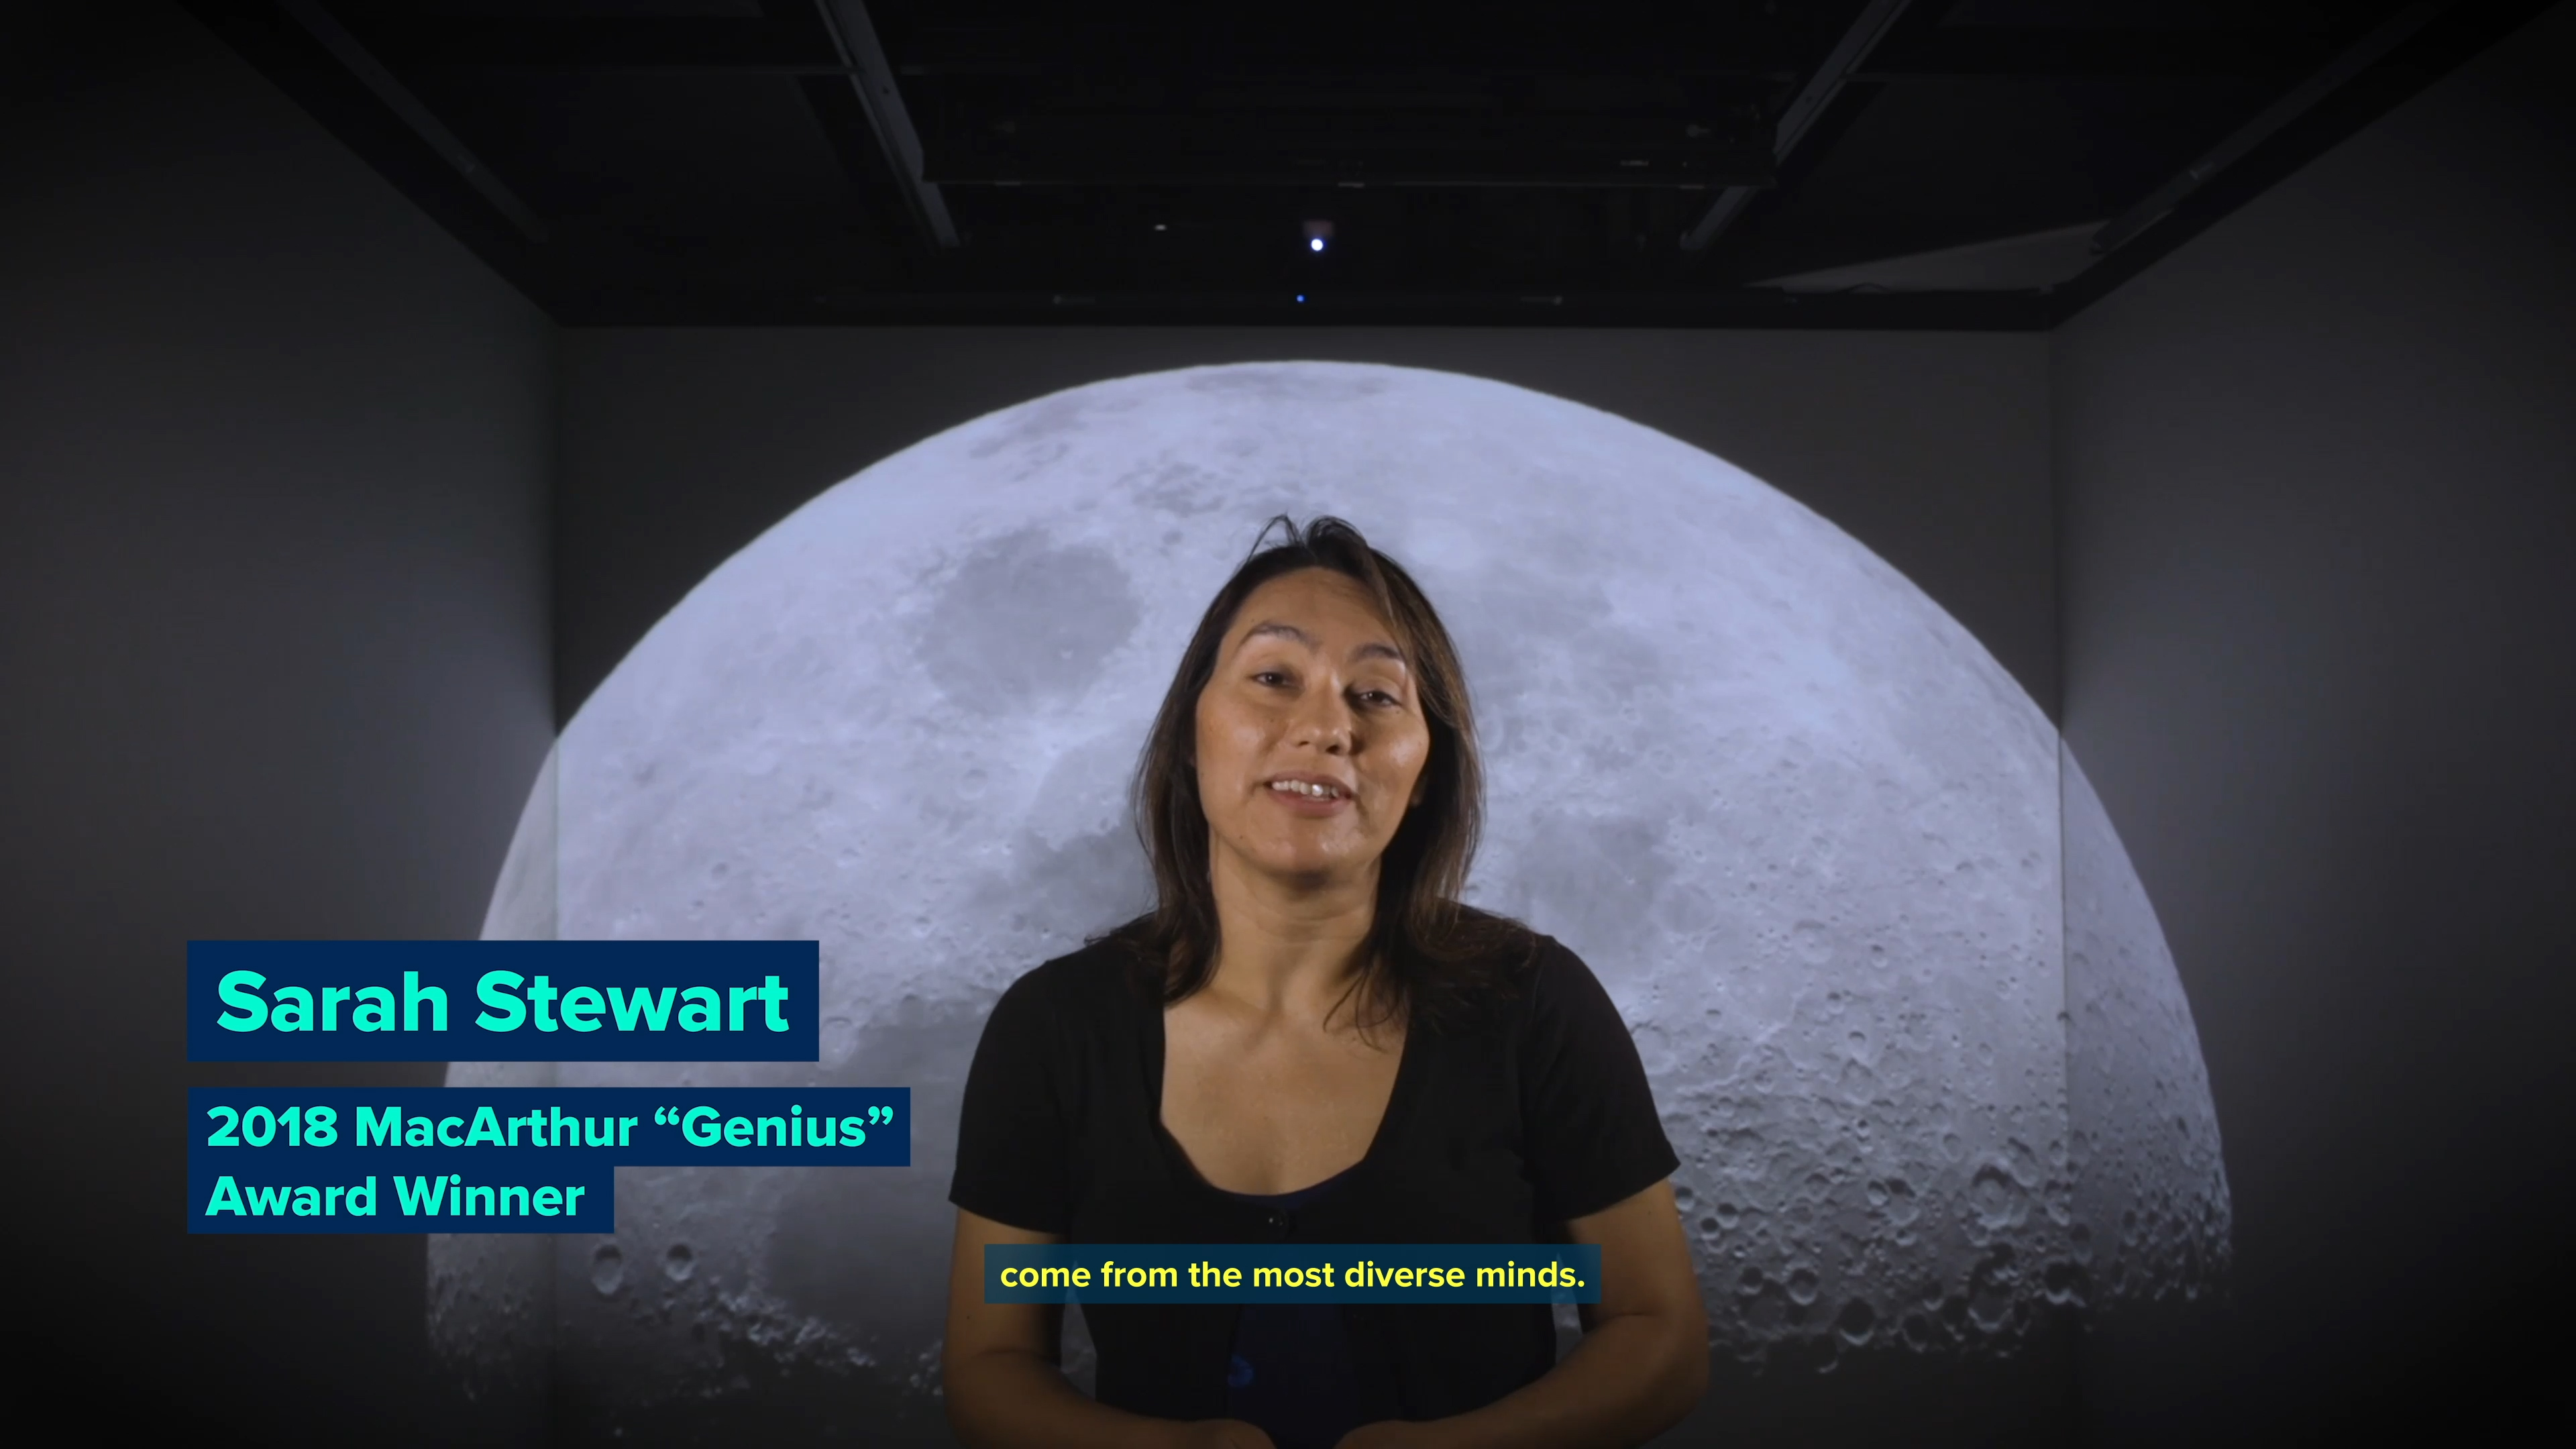 Lower thirds text over interview of woman in room with background photo of the moon